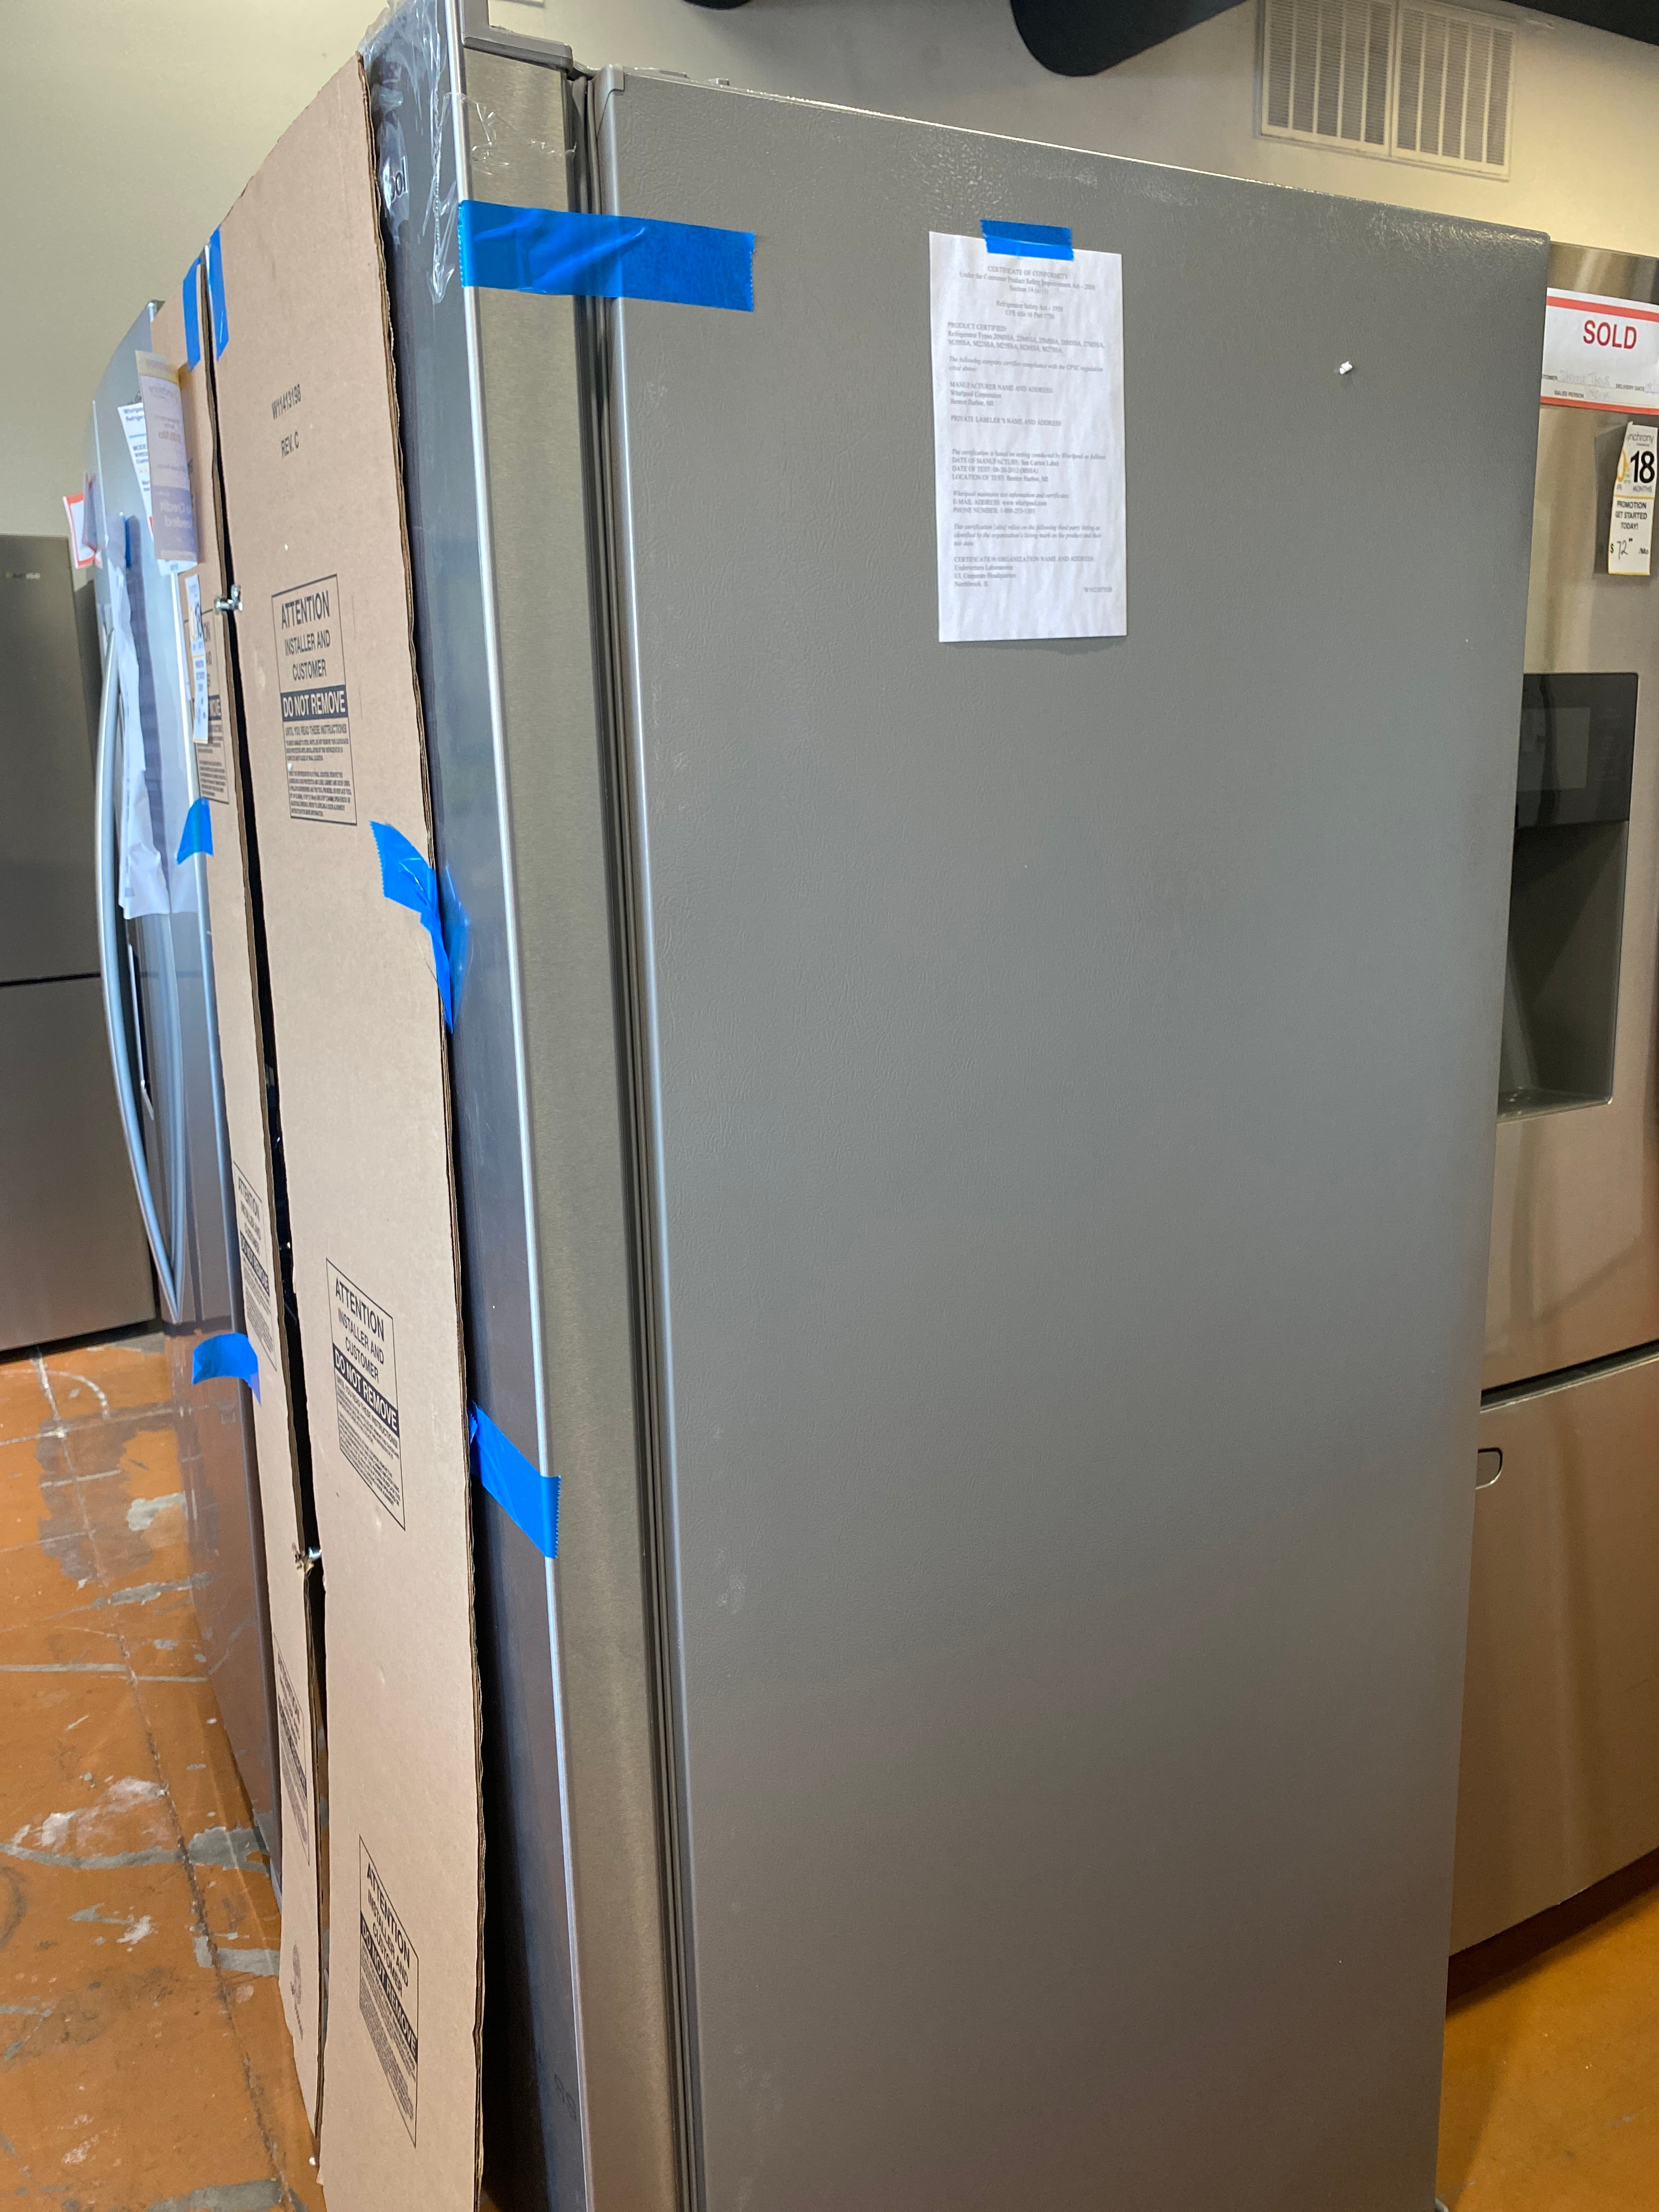 Whirlpool Stainless steel side by side model wrs321sdhz04